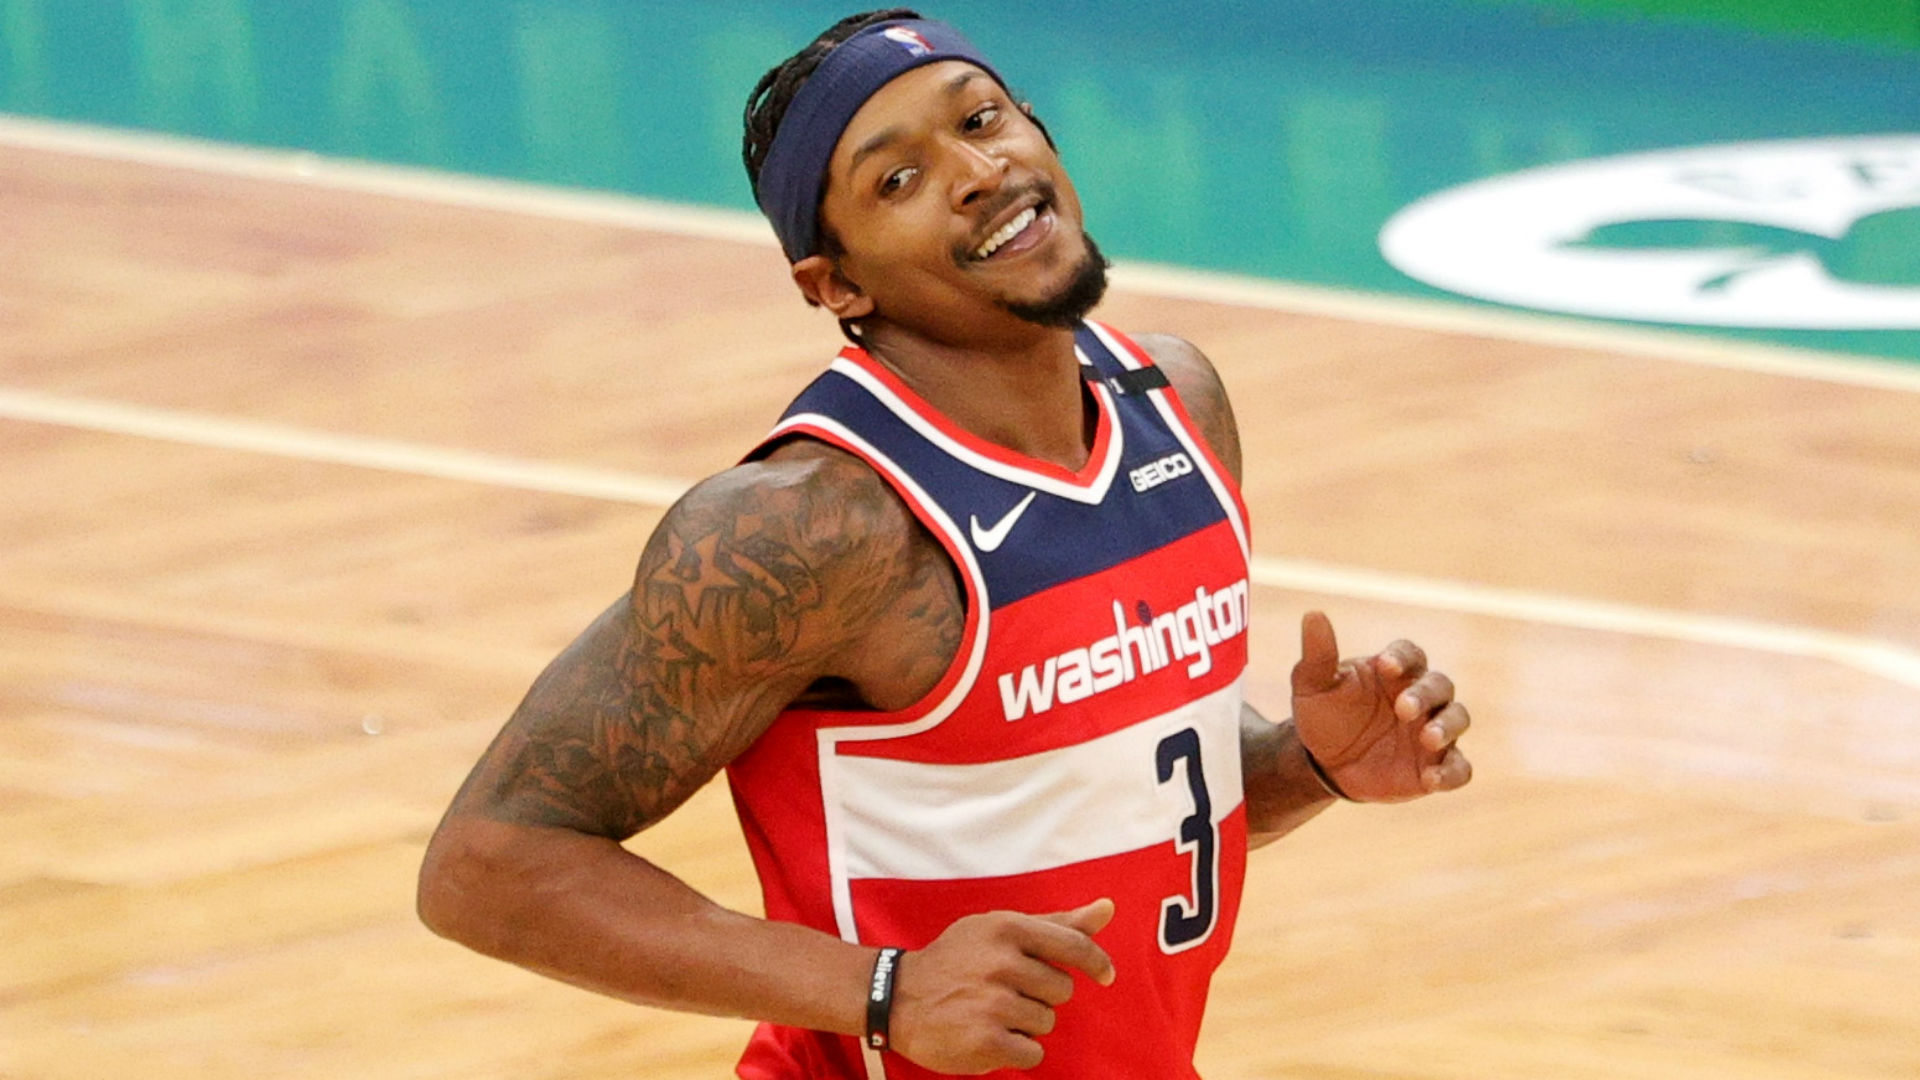 NBA Heat Check: Beal on a tear, Ball rolling but Harden misfiring for Rockets